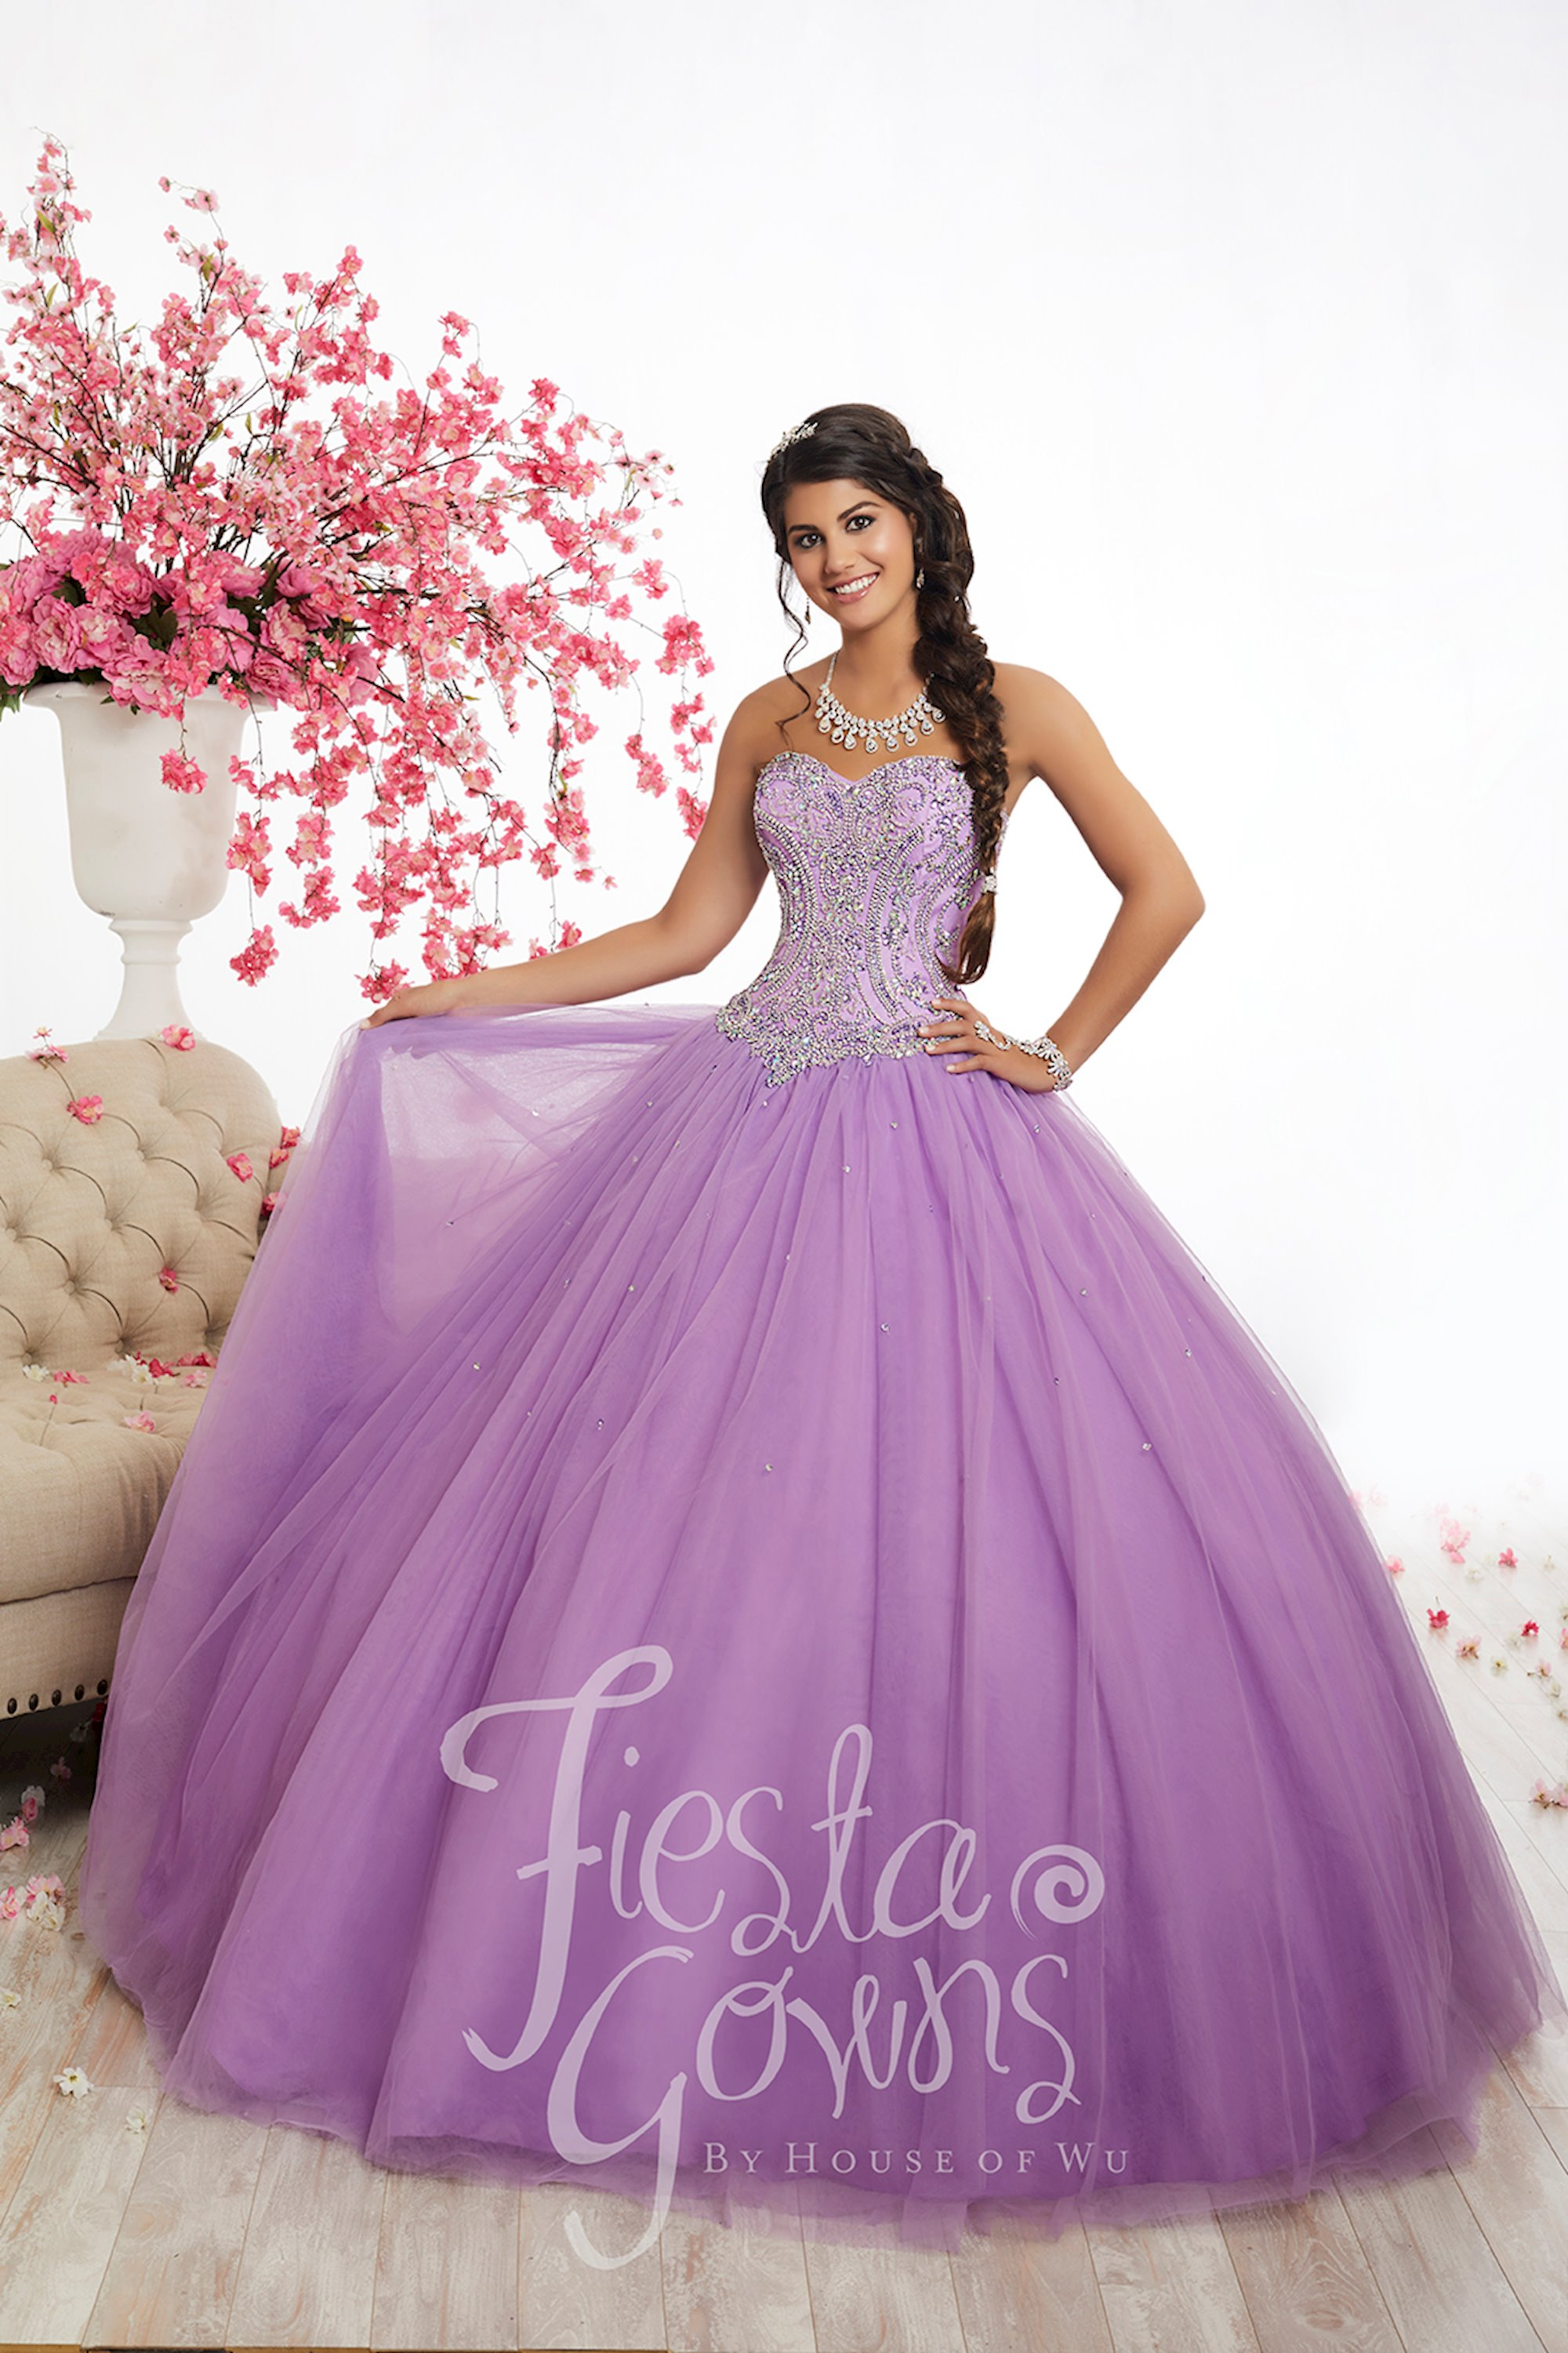 29943c9588d4e Fiesta Gowns - 56343 | The Ultimate